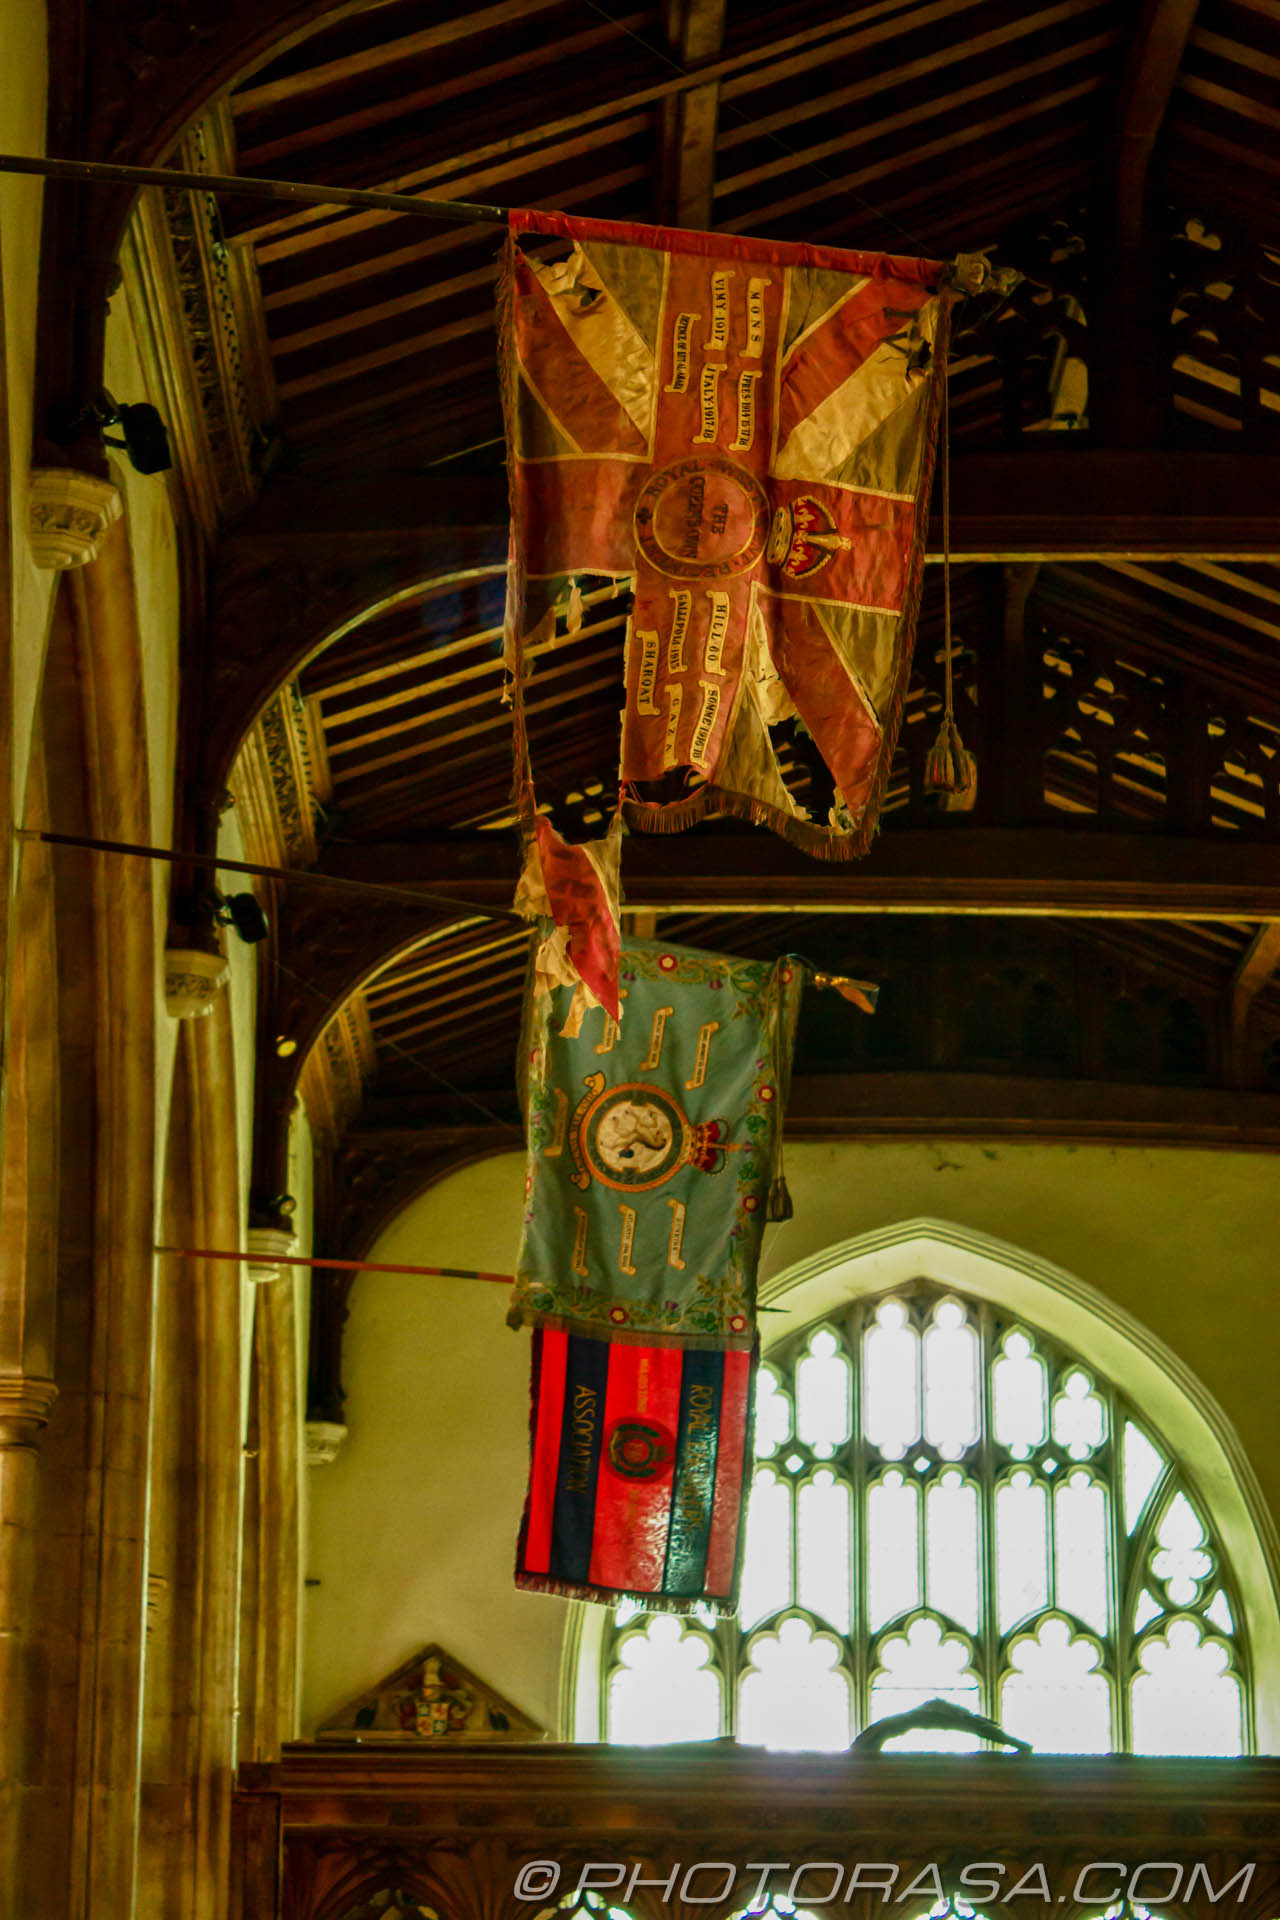 http://photorasa.com/inside-all-saints-church-in-maidstone/torn-british-flag-in-church/